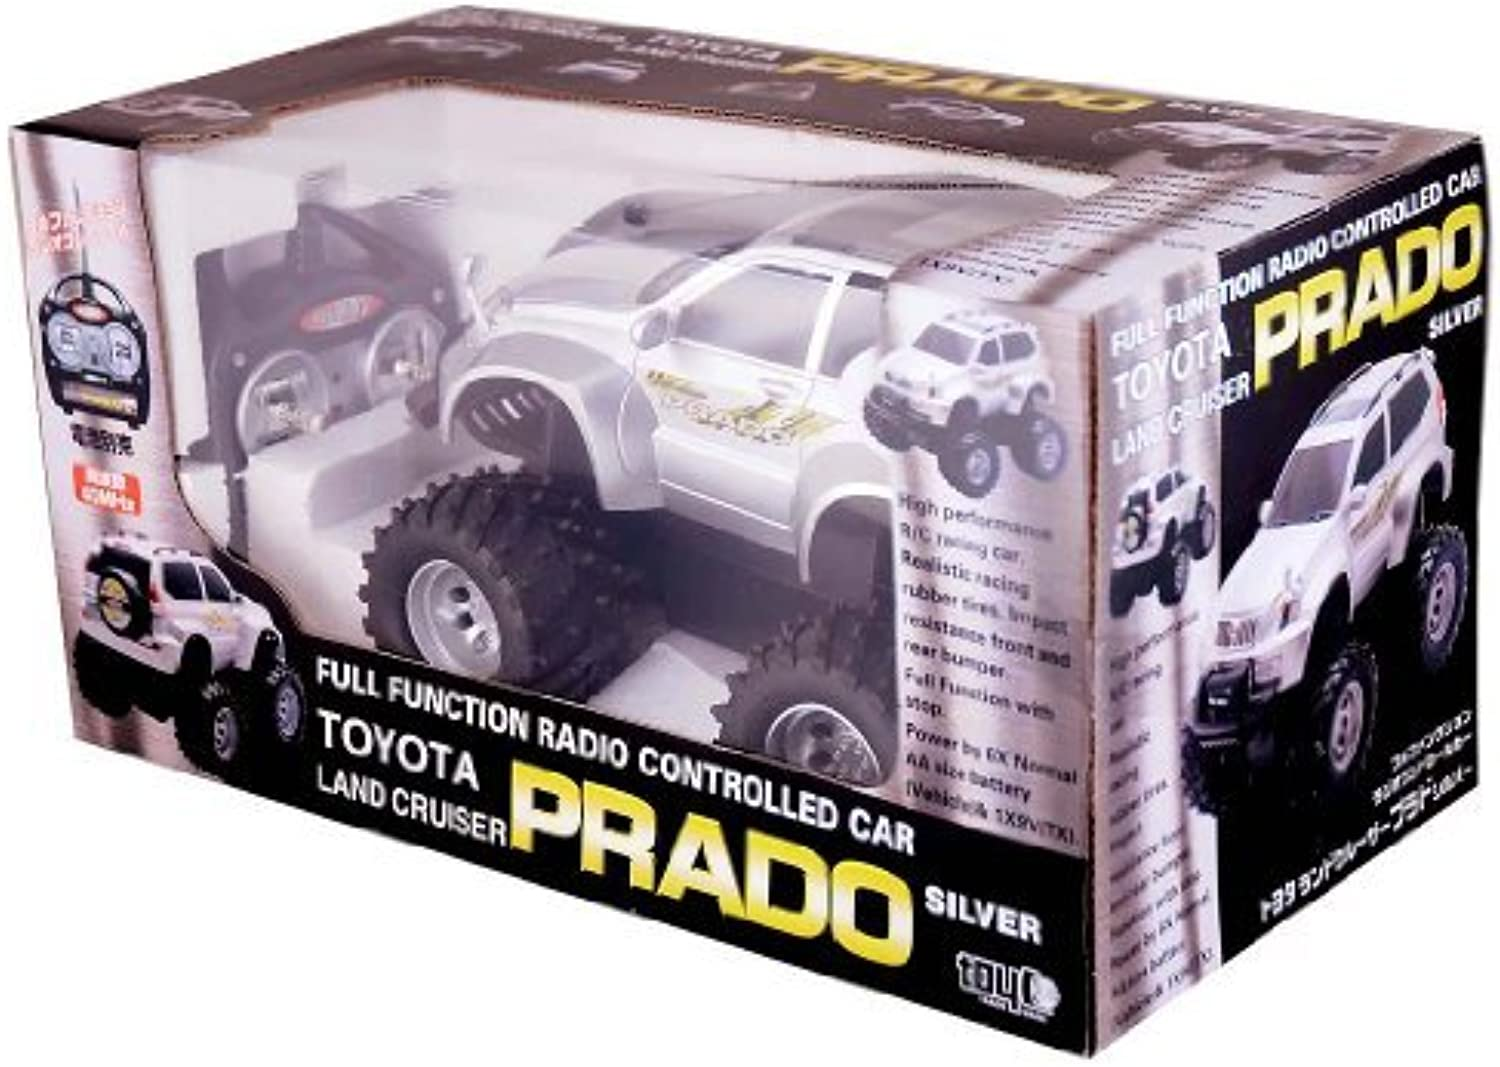 R   C Toyota Land Cruiser Prado White (Japan import   The package and the manual are written in Japanese)